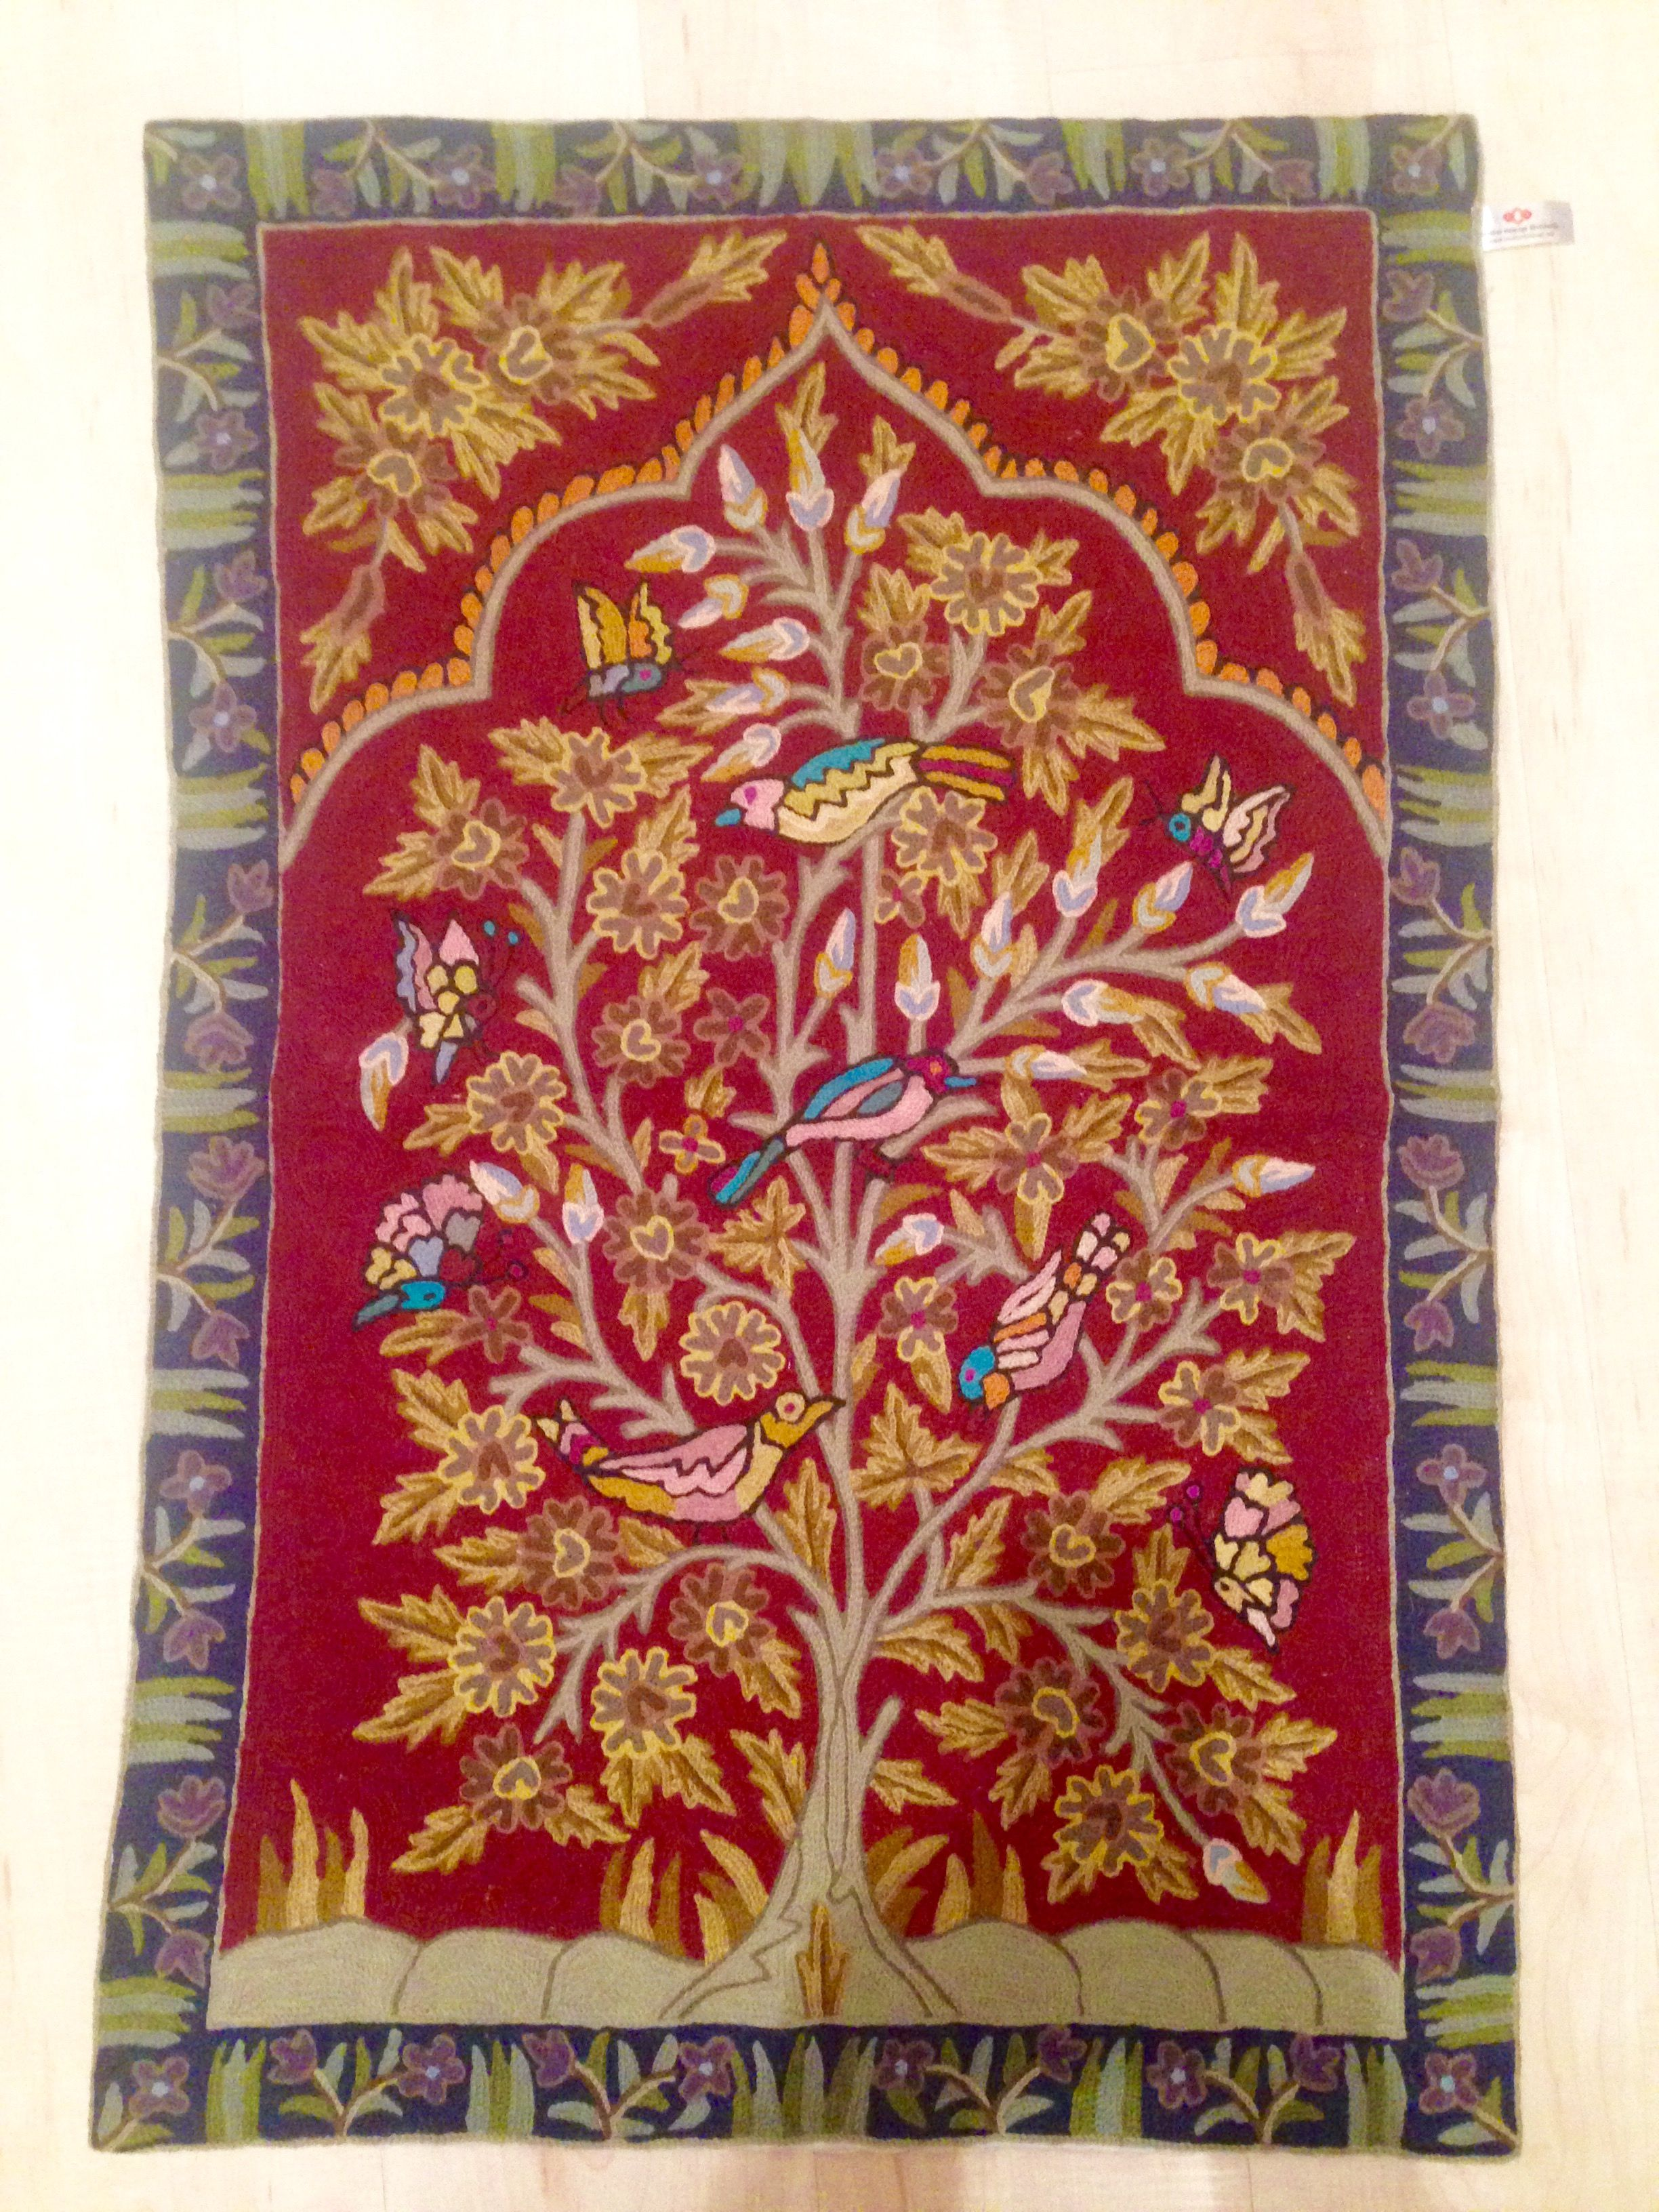 Handmade Kashmiri Wool Embroidery Wall Hanging Tapestry Hanging